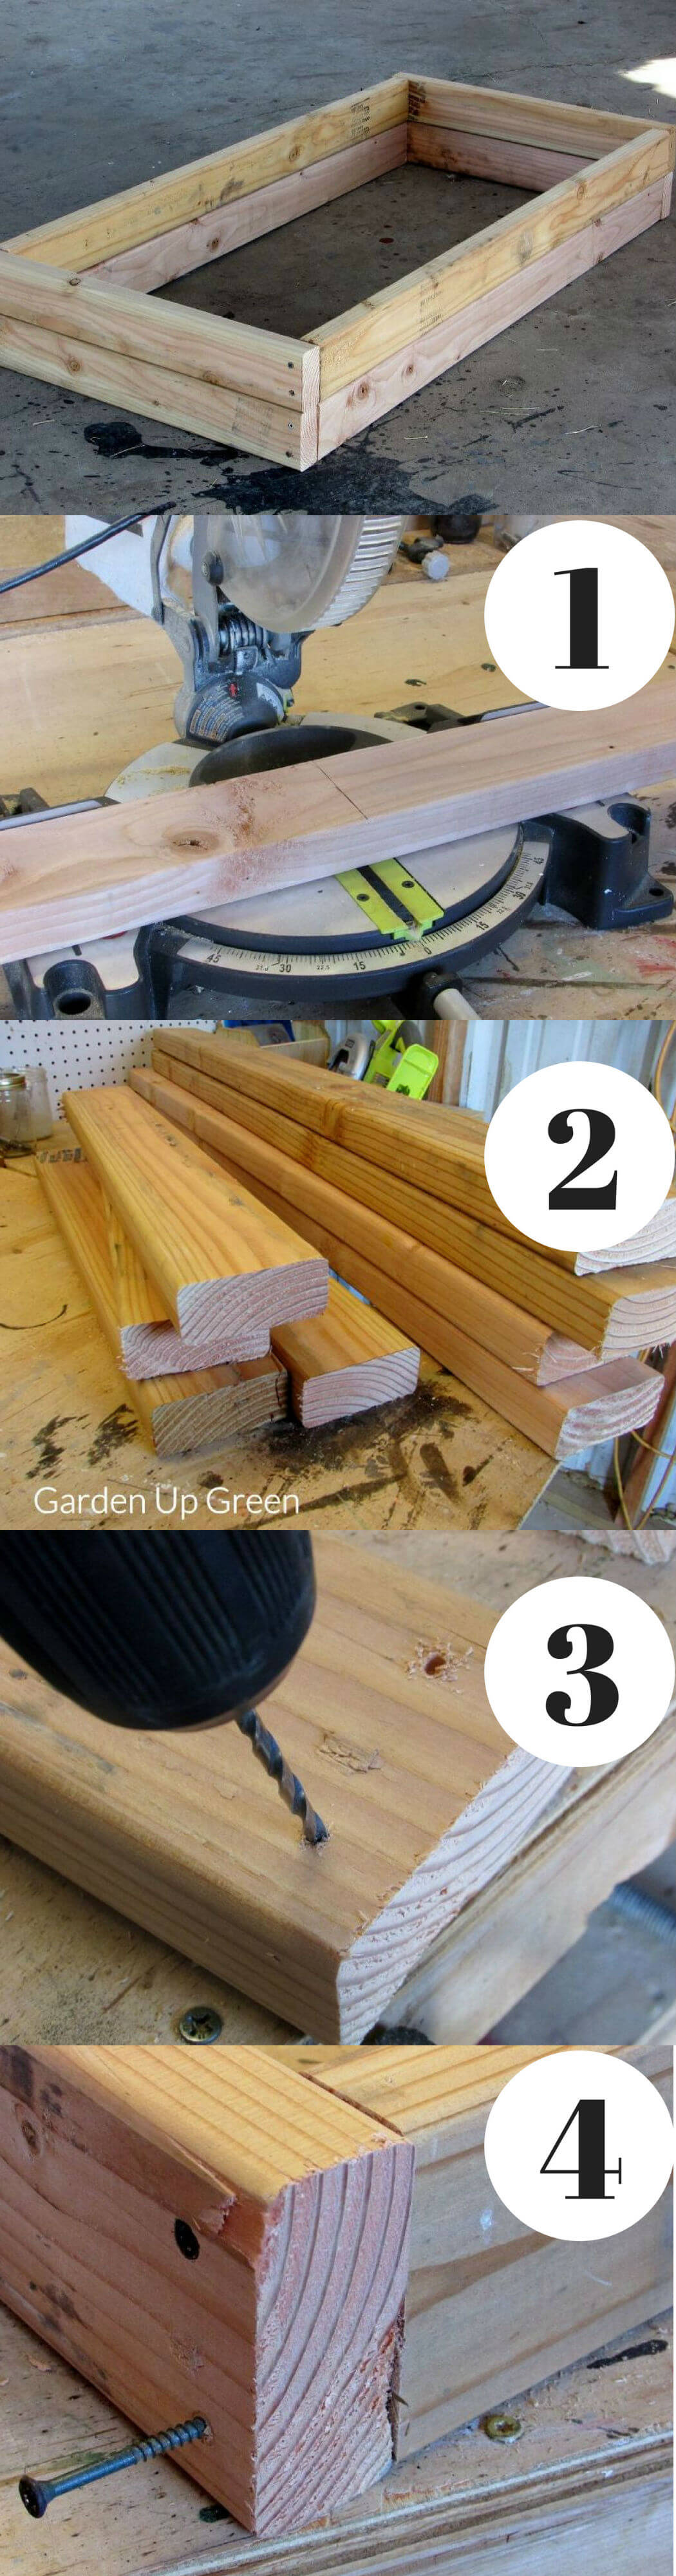 Raised Bed with $10 | How to Build a Raised Vegetable Garden Bed | 39+ Simple & Cheap Raised Vegetable Garden Bed Ideas - farmfoodfamily.com